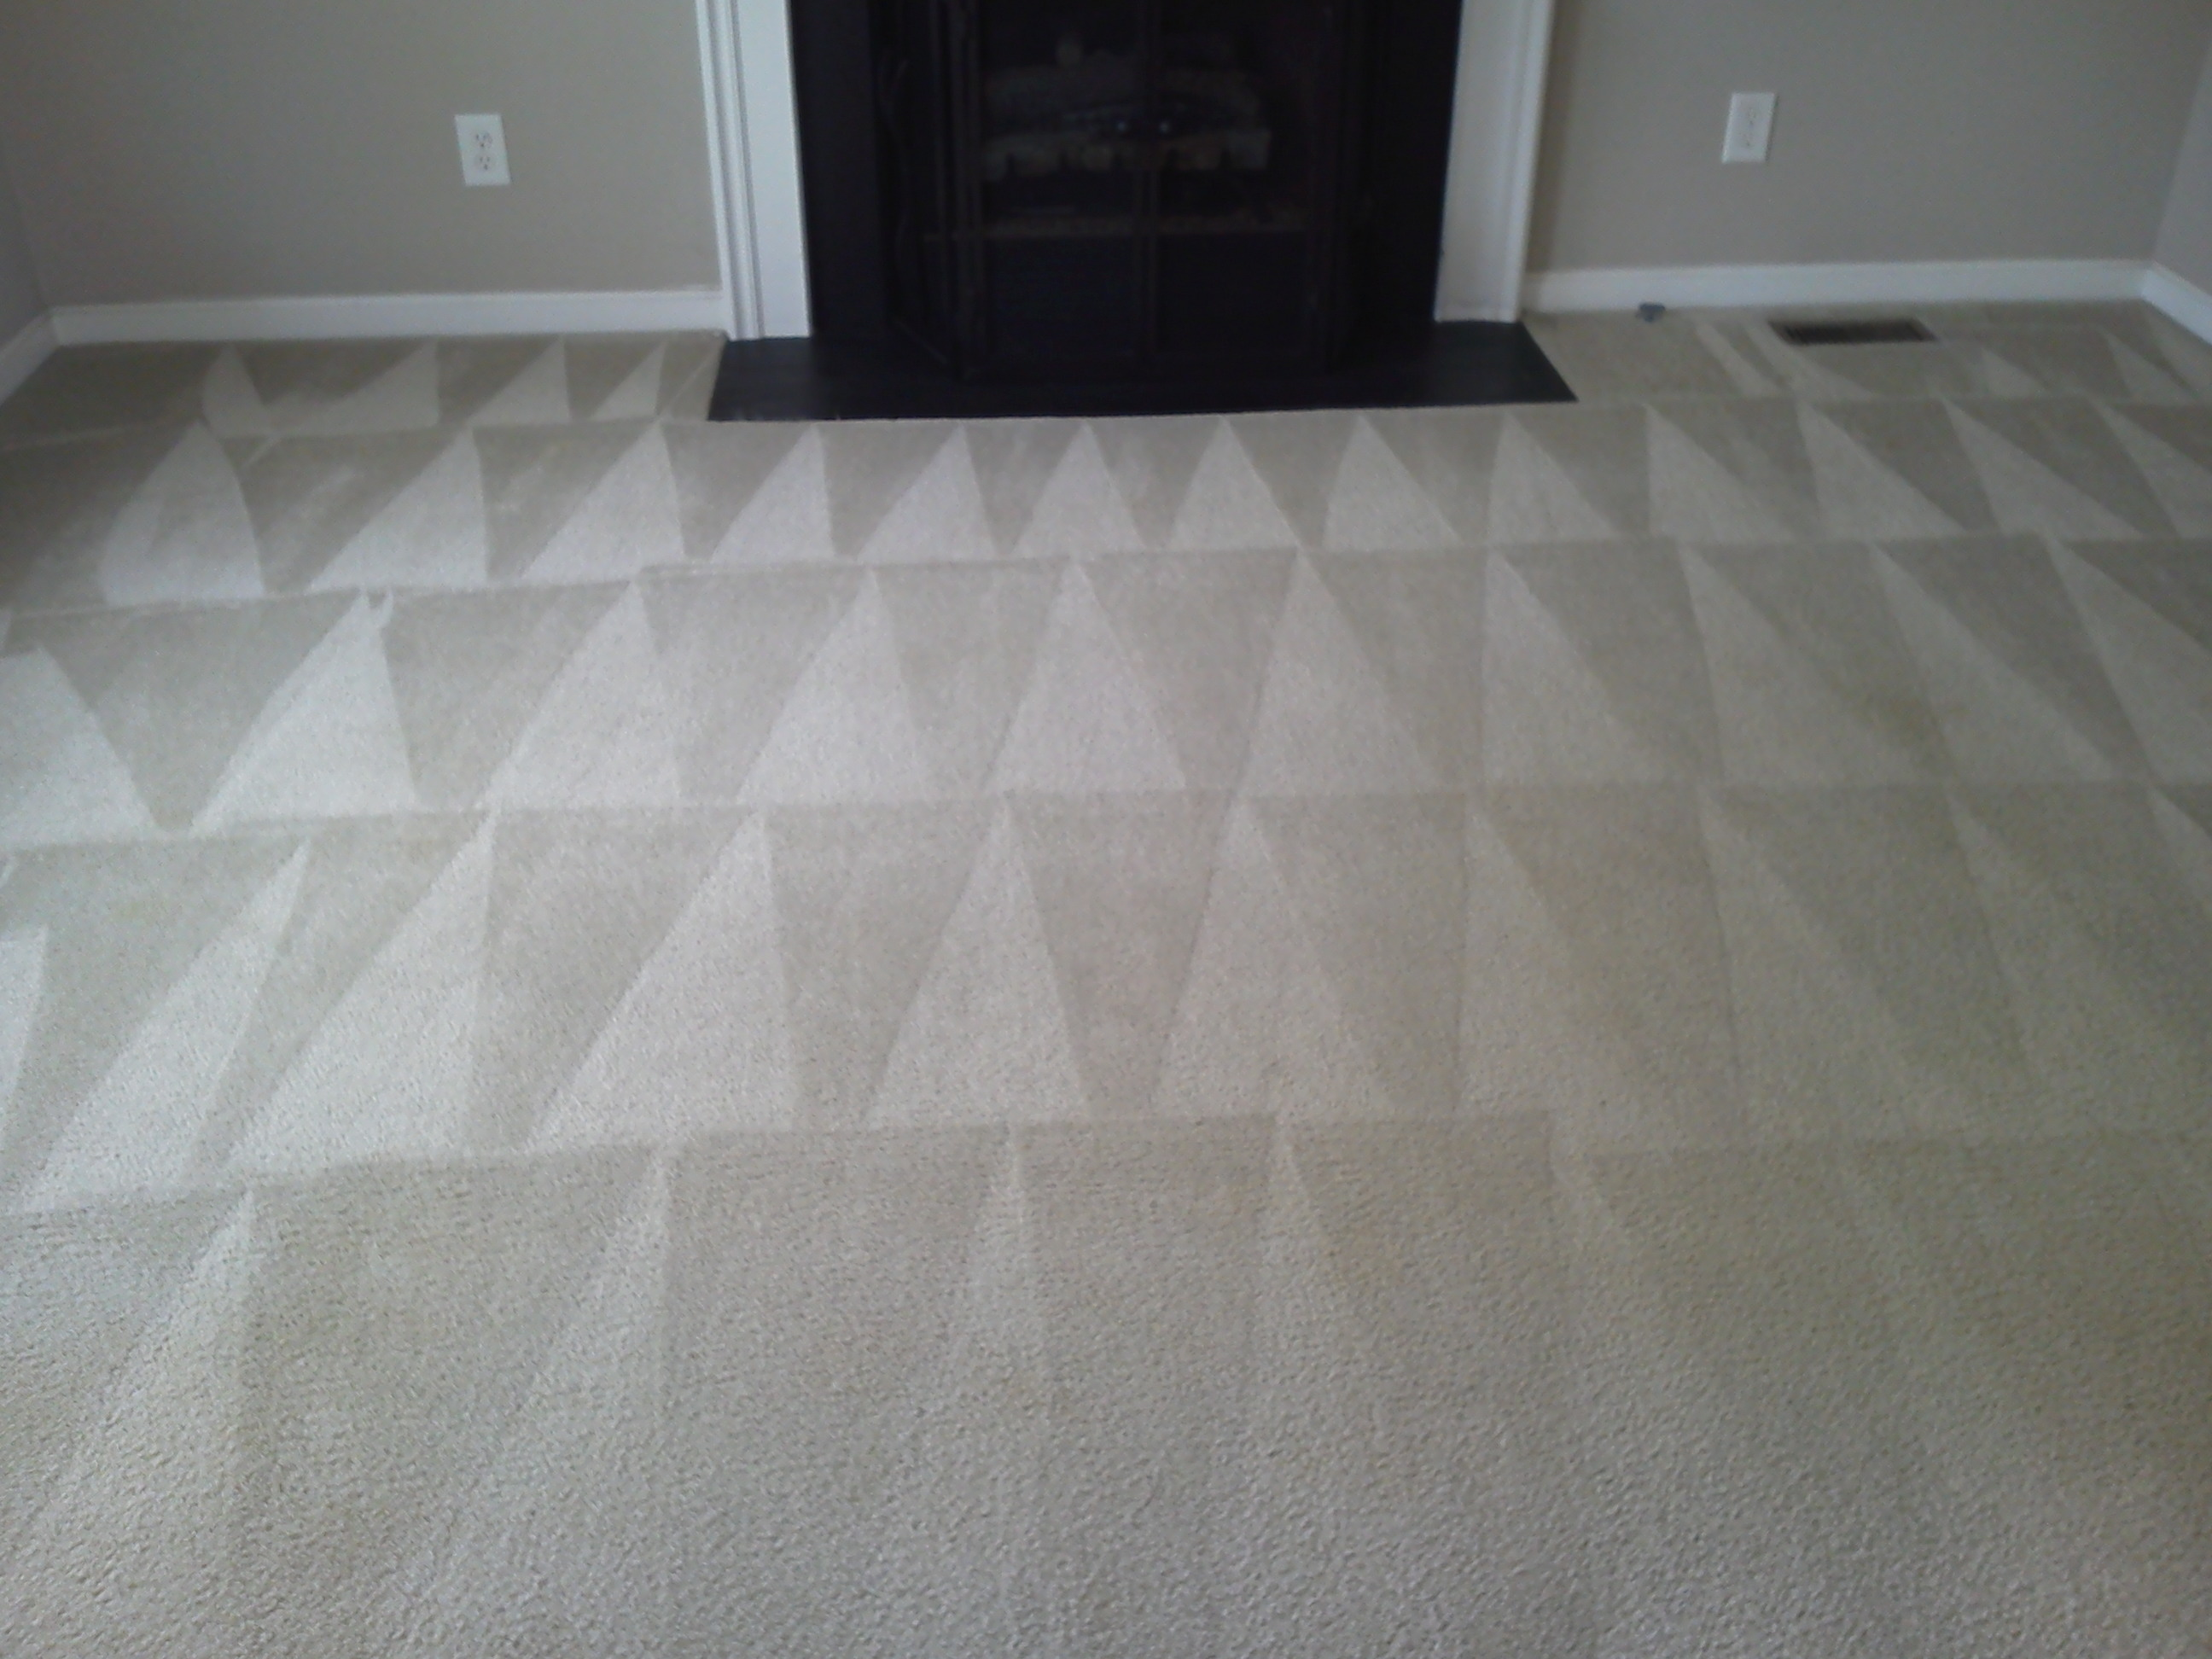 Stafford Carpet Cleaning Pros  Pristine Tile  Carpet